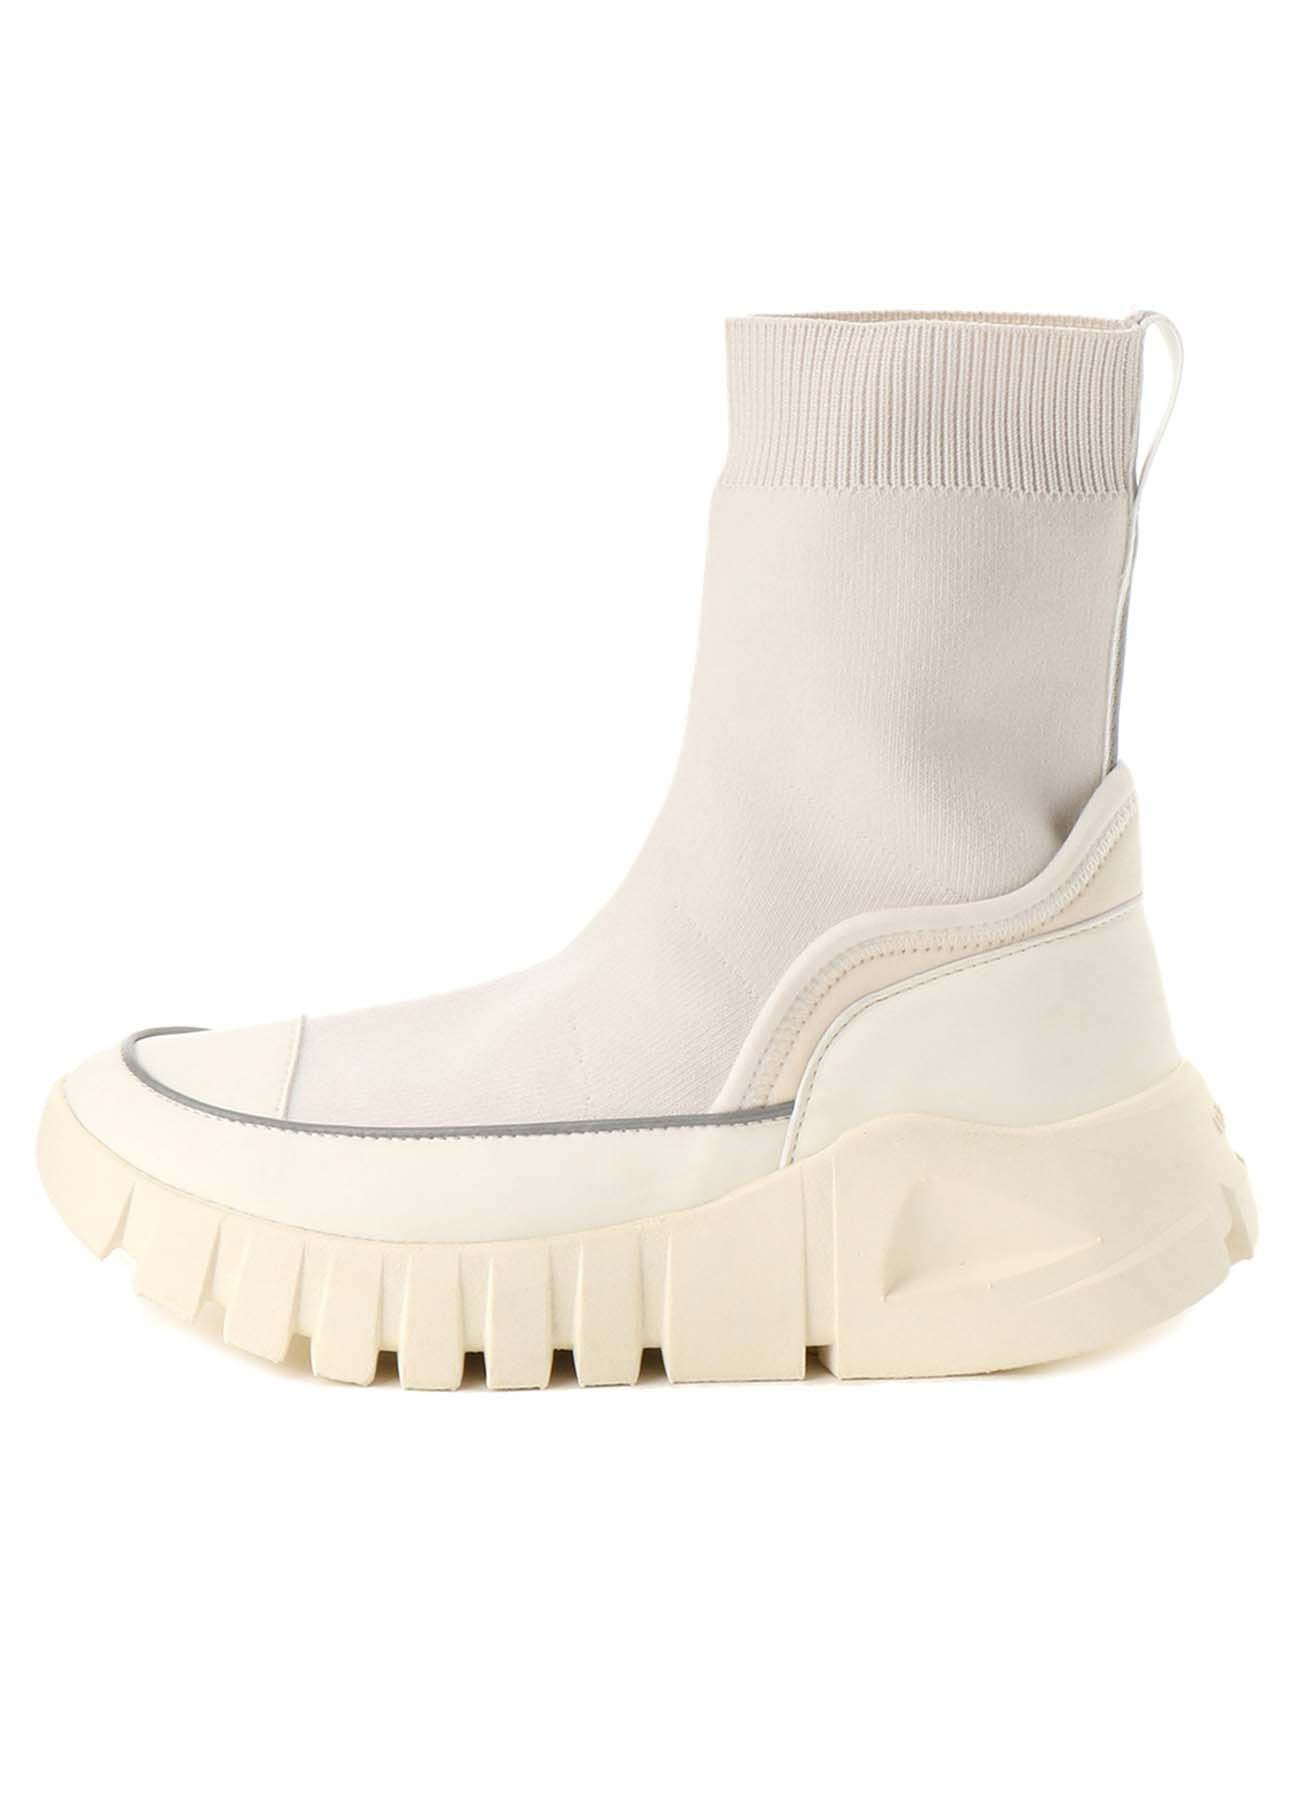 POLYESTER KNIT DAD SNEAKERS